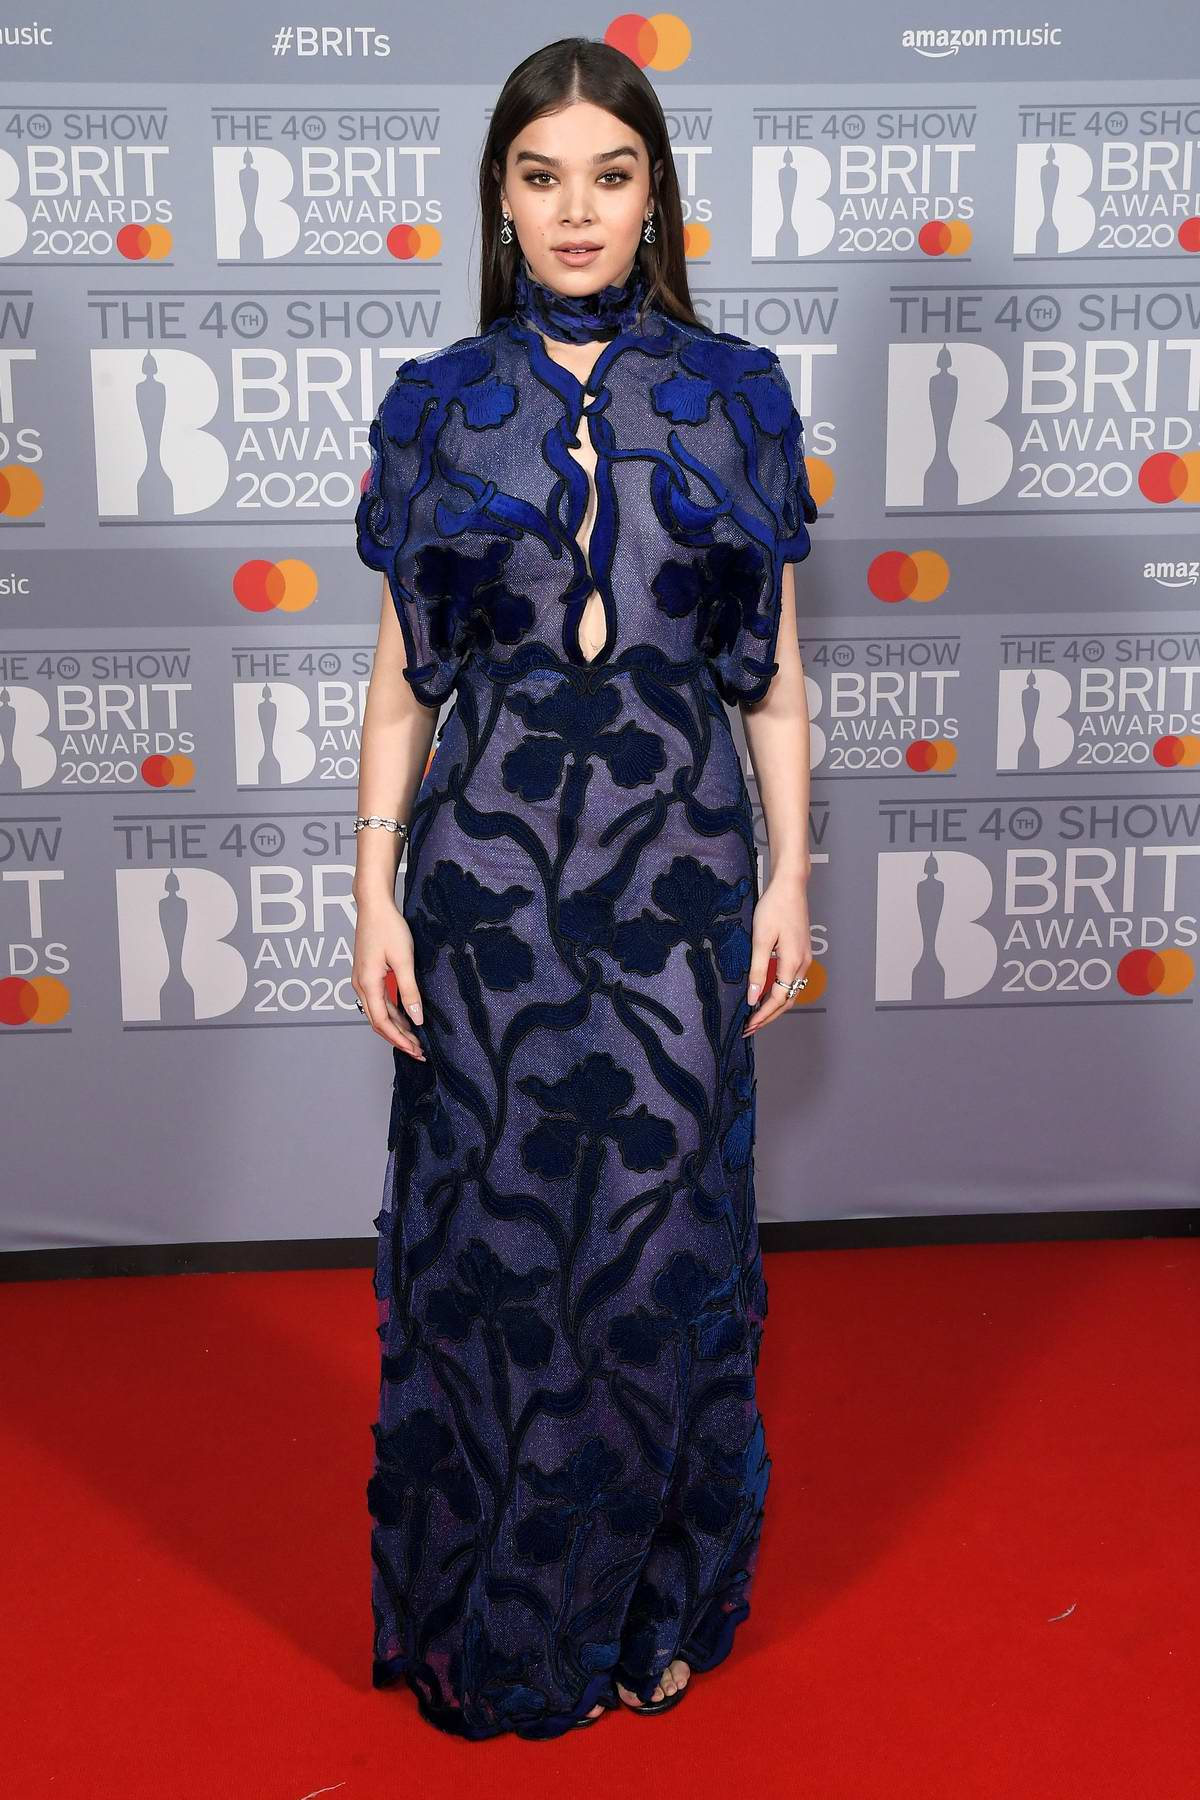 hailee steinfeld attends the brit awards 2020 at the o2 arena in london, uk-180220_10